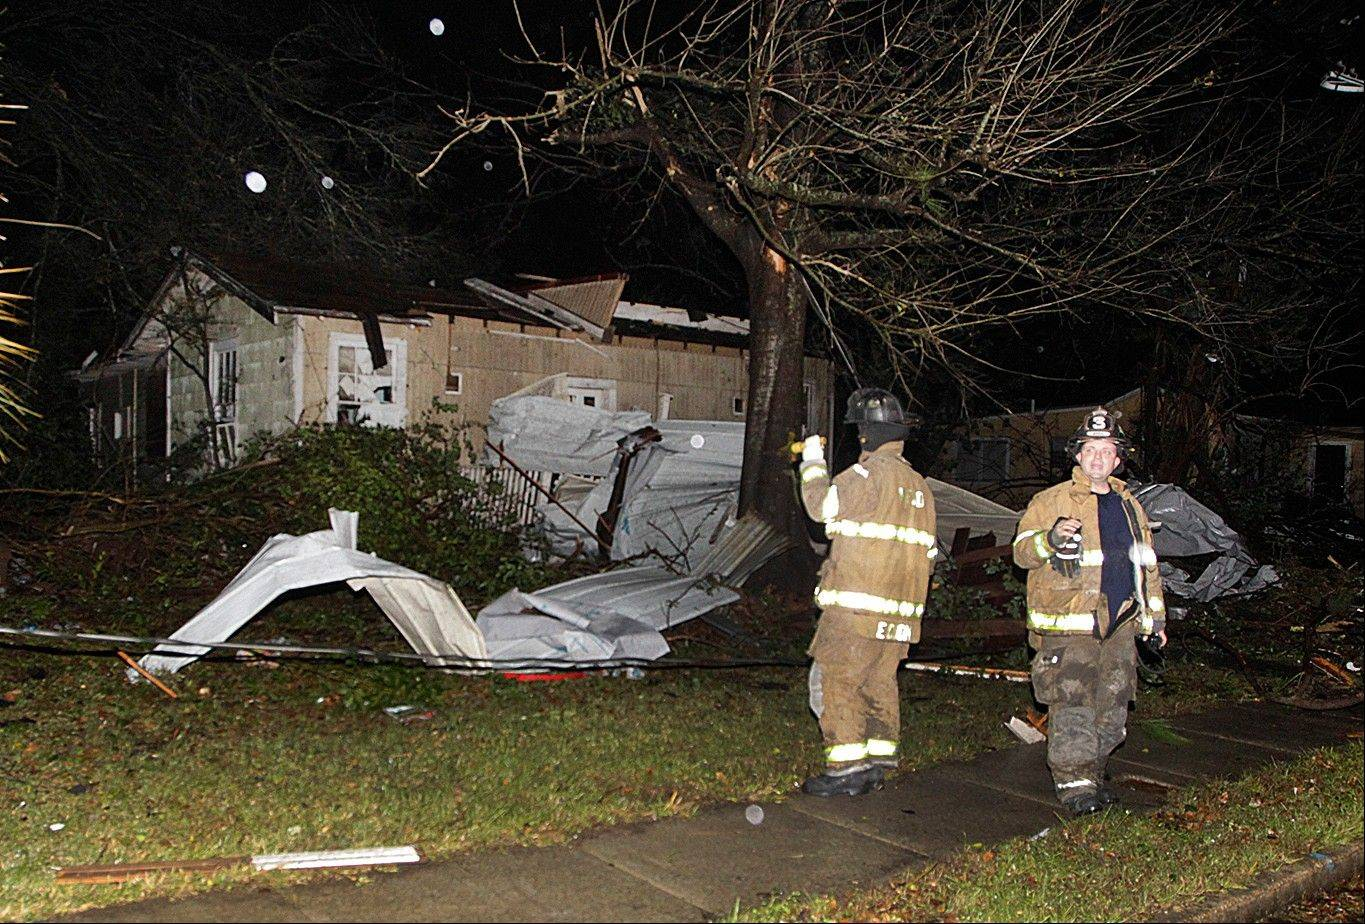 Firefighters go door-to-door on North Carlen Street in the Midtown section of Mobile, Ala. after a tornado touched down Tuesday, Dec. 25, 2012. A Christmas Day twister outbreak left damage across the Deep South while holiday travelers in the nation's much colder midsection battled sometimes treacherous driving conditions from freezing rain and blizzard conditions.